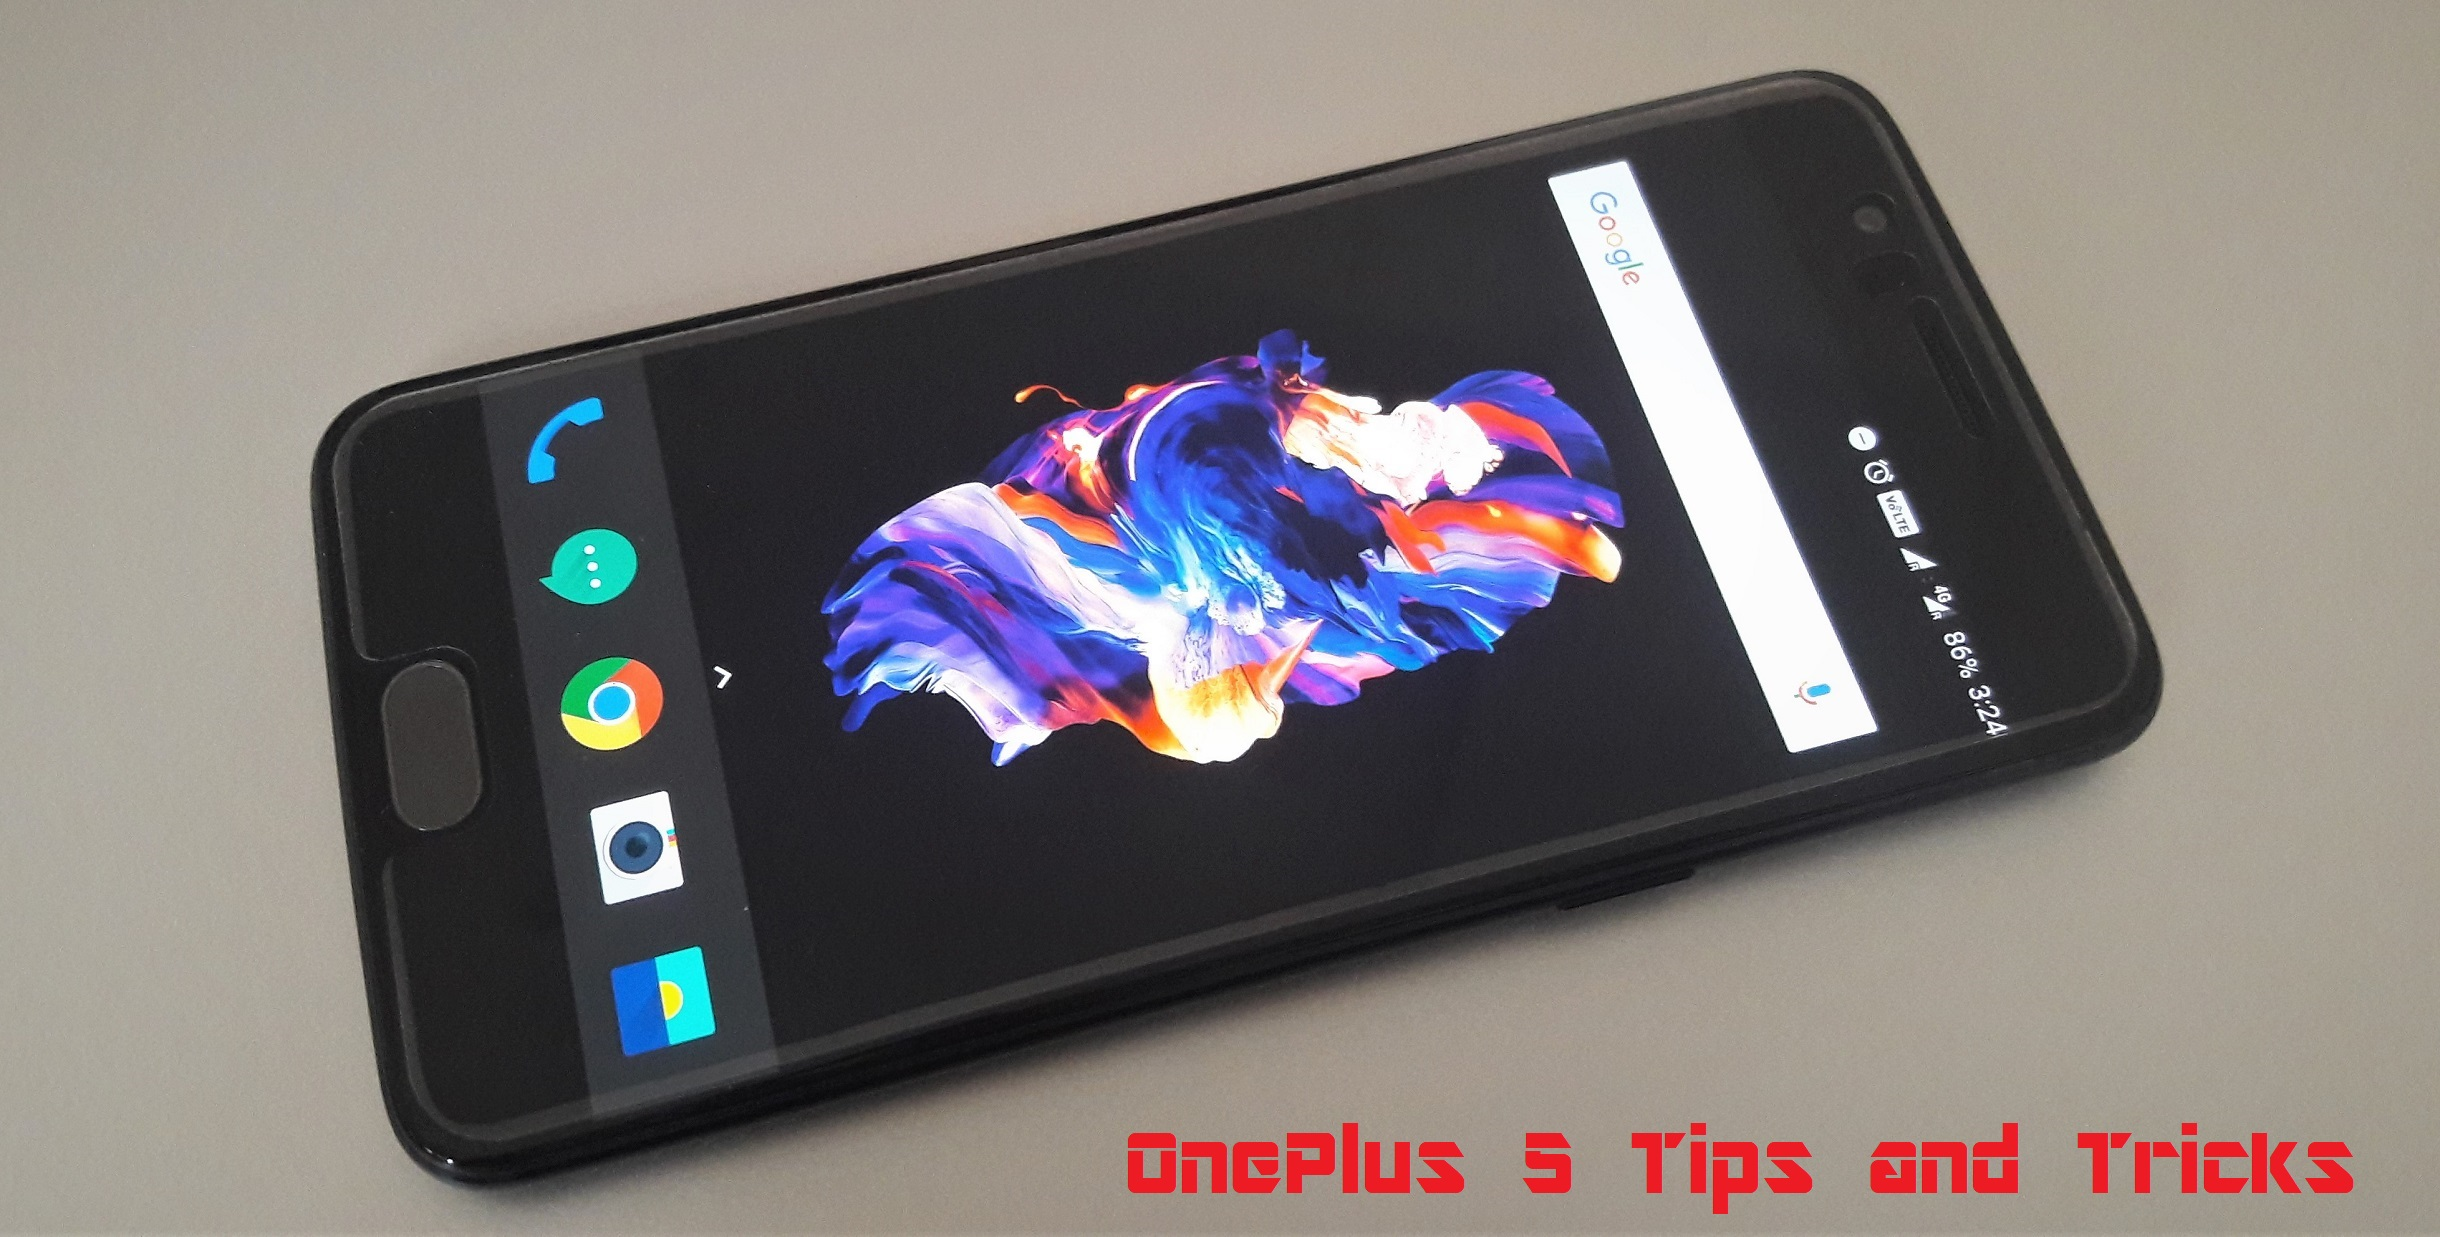 oneplus 5 tips and tricks